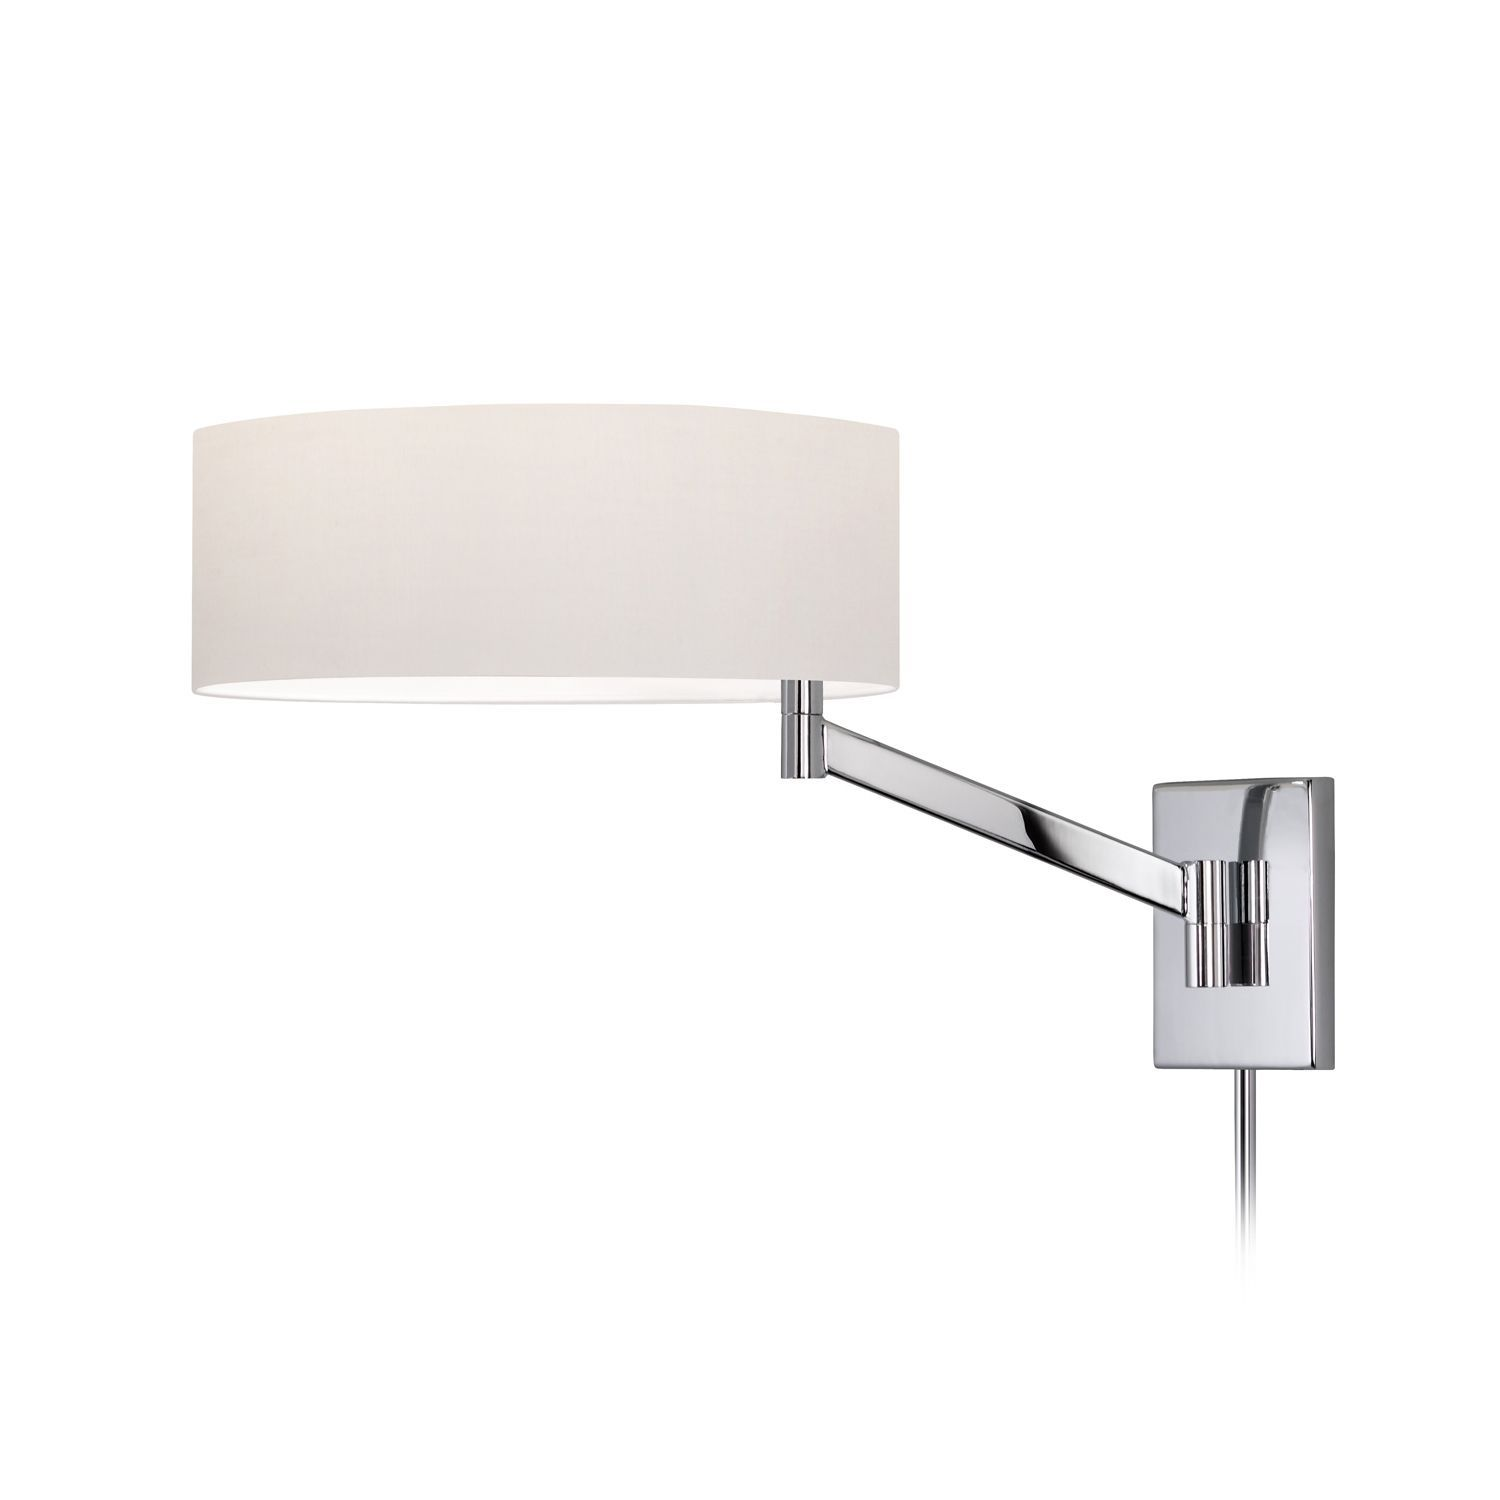 Perch 1-Light Swing Arm Wall Lamp comes in a polished chrome and a ...